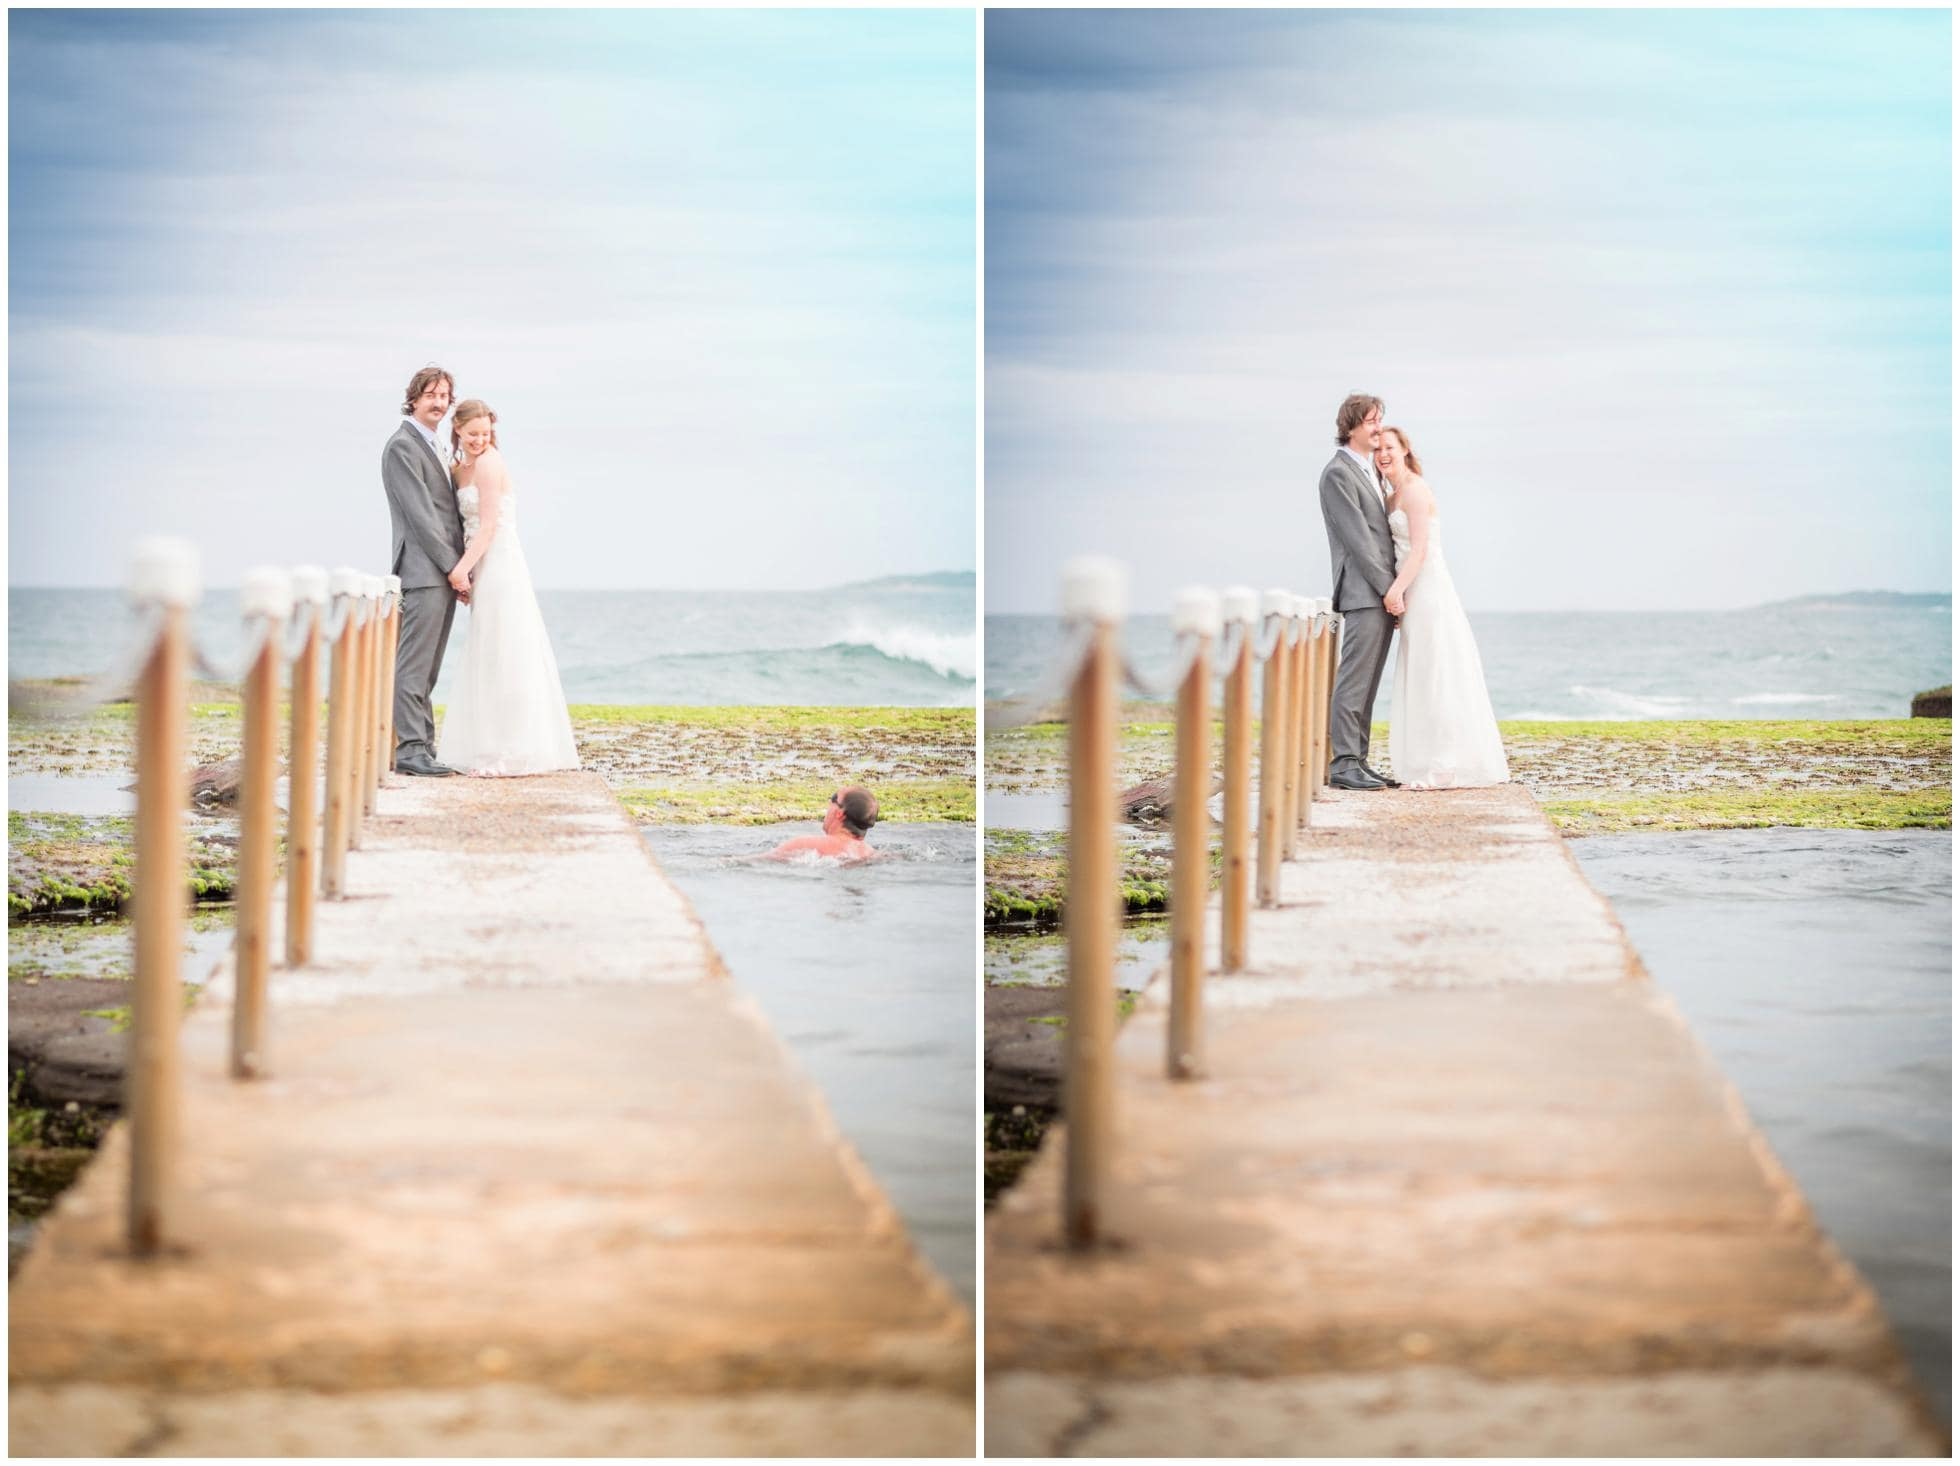 Destination Wedding Photography with some humour! Swimmer swimming into the shot!